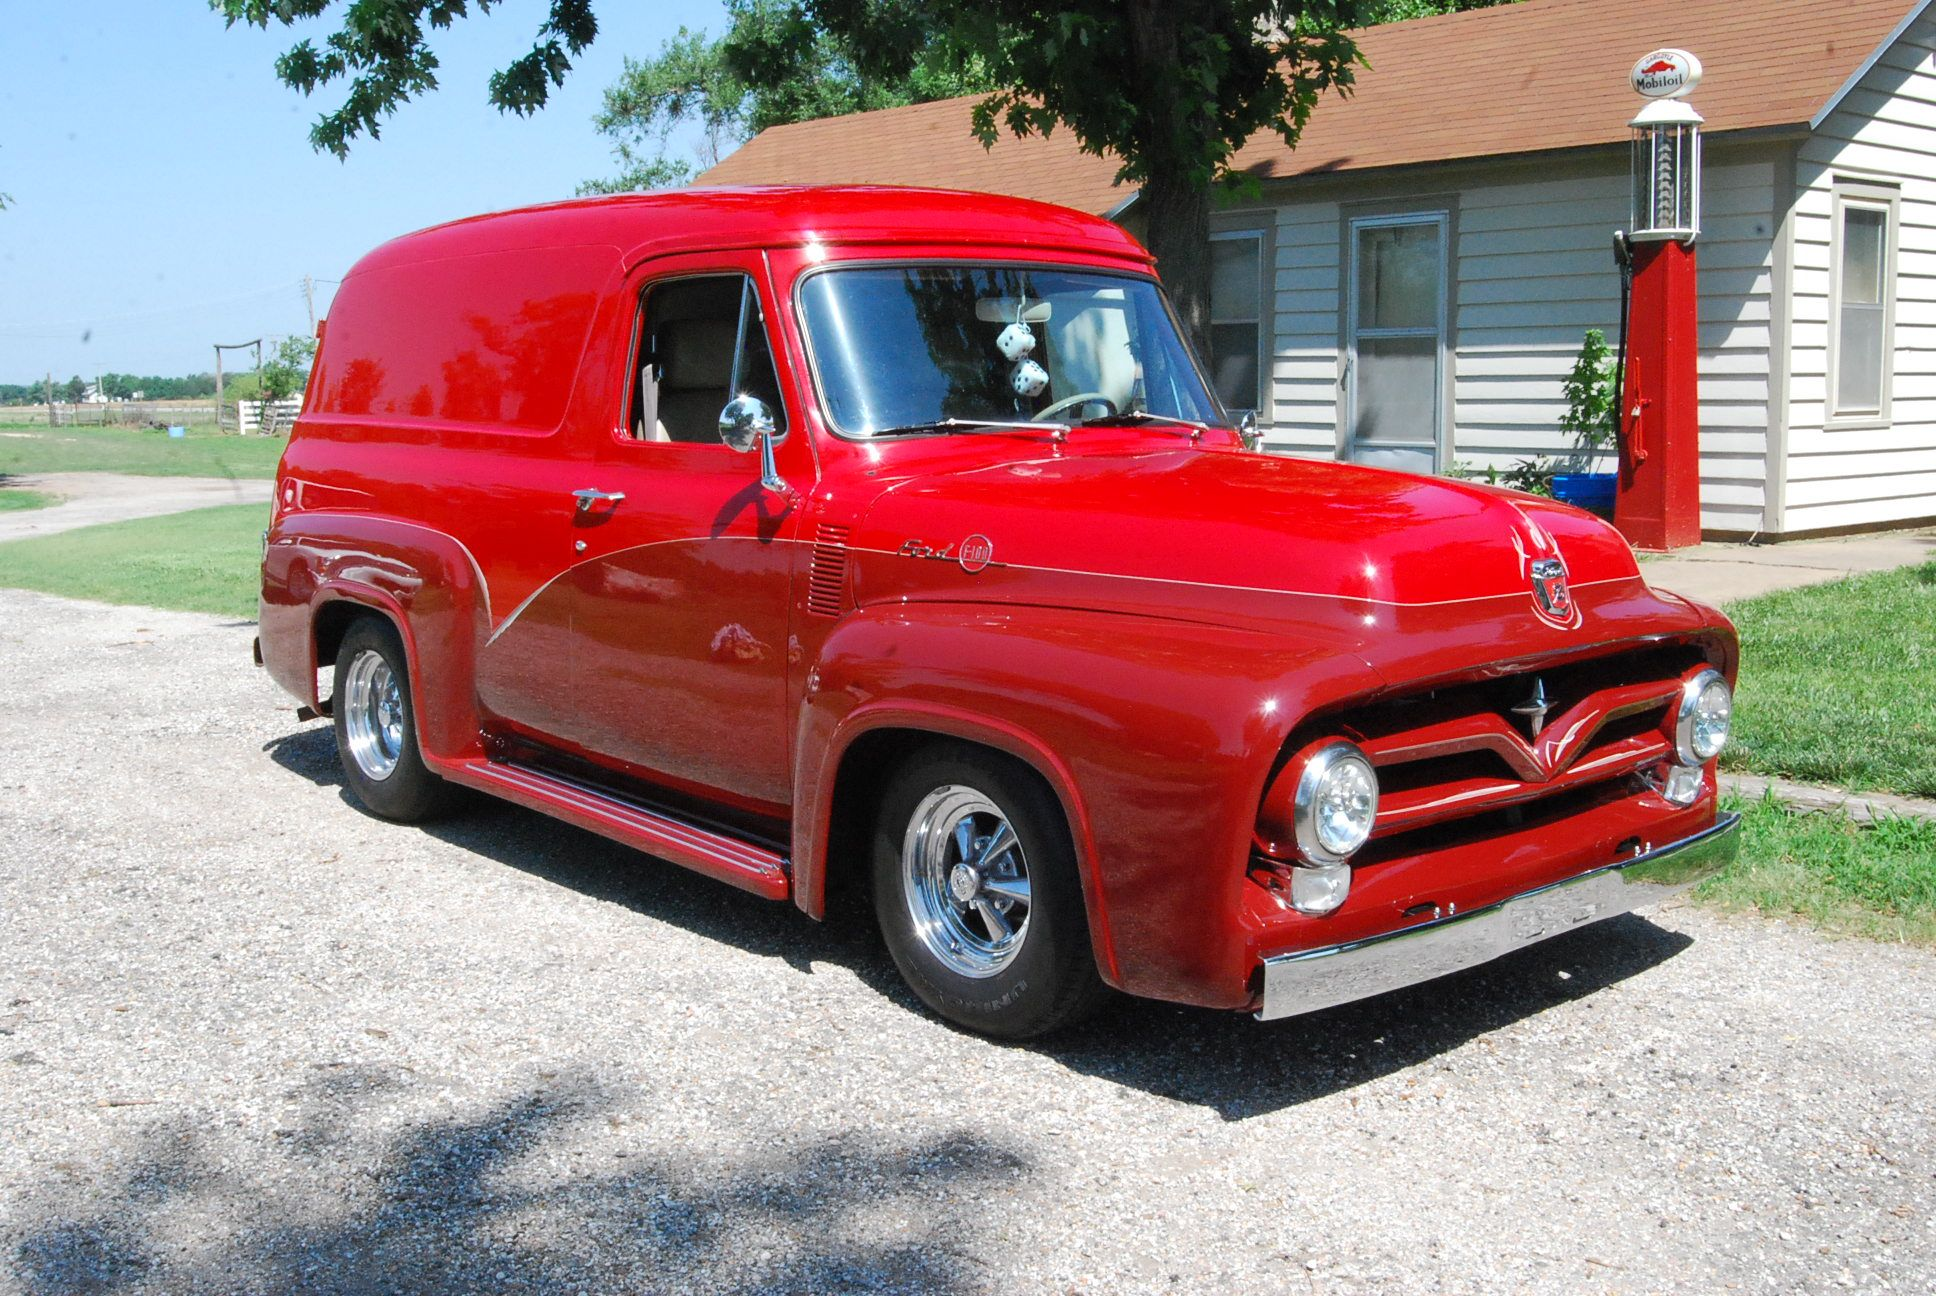 Motor\'n | 1955 Ford F-100 Panel Street Rod for sale at www.motorn ...